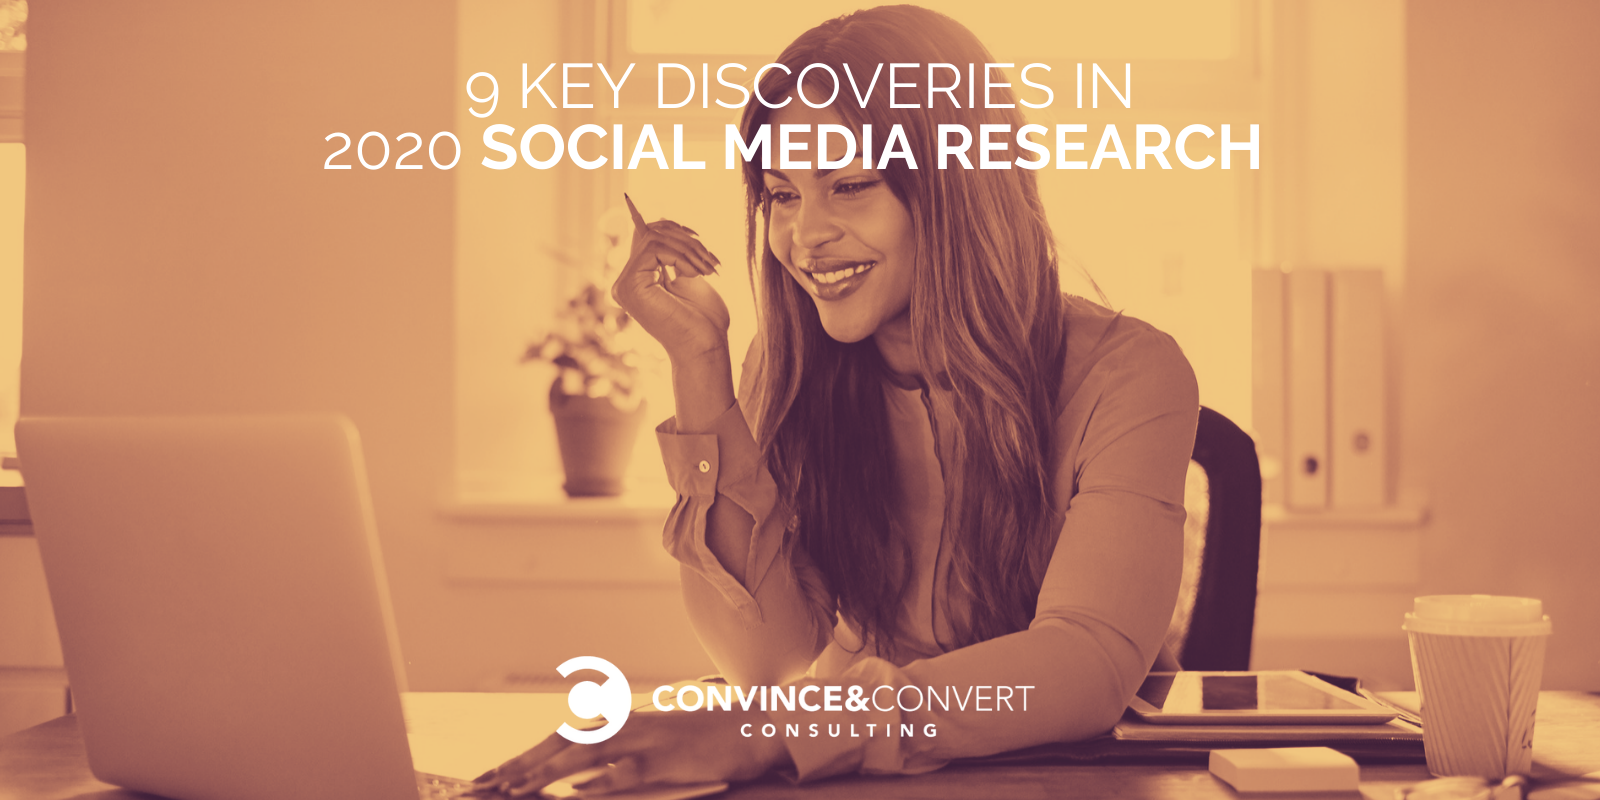 9 Key Discoveries in 2020 Social Media Research